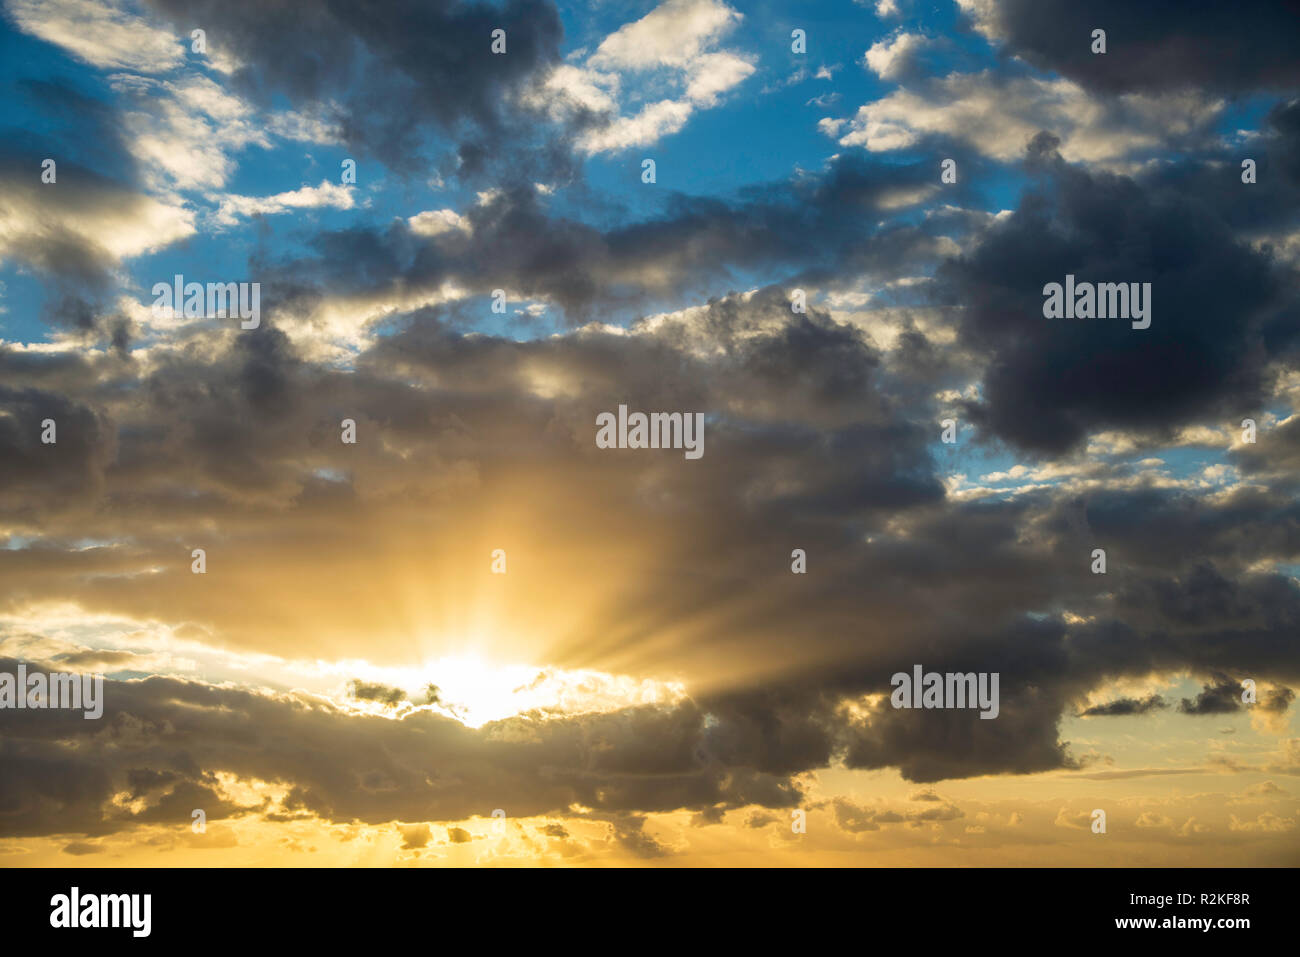 Sunrise in partly cloudy sky. - Stock Image